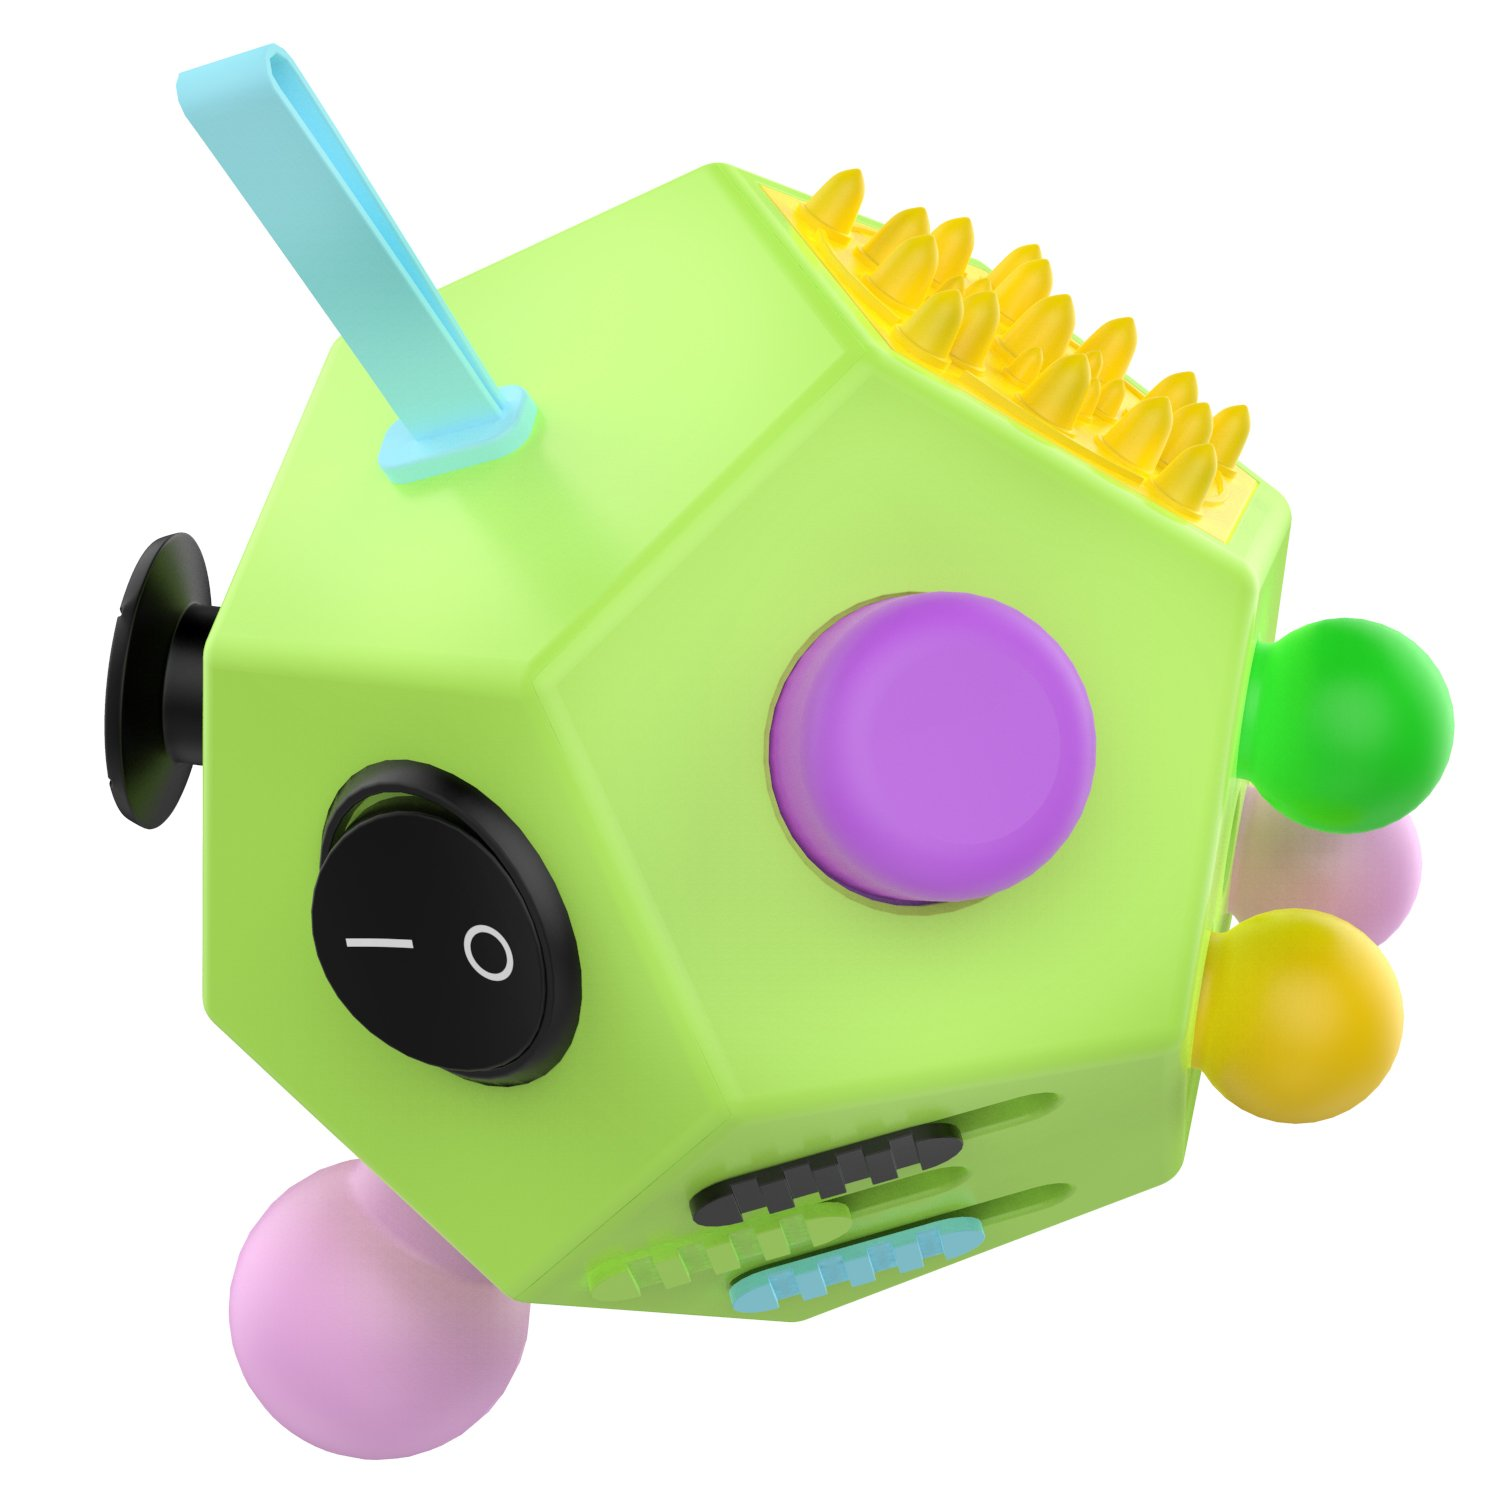 6cb52b01ceb38 12 Sided Fidget Cube, ATIC Fidget Twiddle Cube Dodecagon Rubiks Cube Stress  Relief Hand Toy Decompression for ADD, ADHD, Autism Kids and Adults, ...